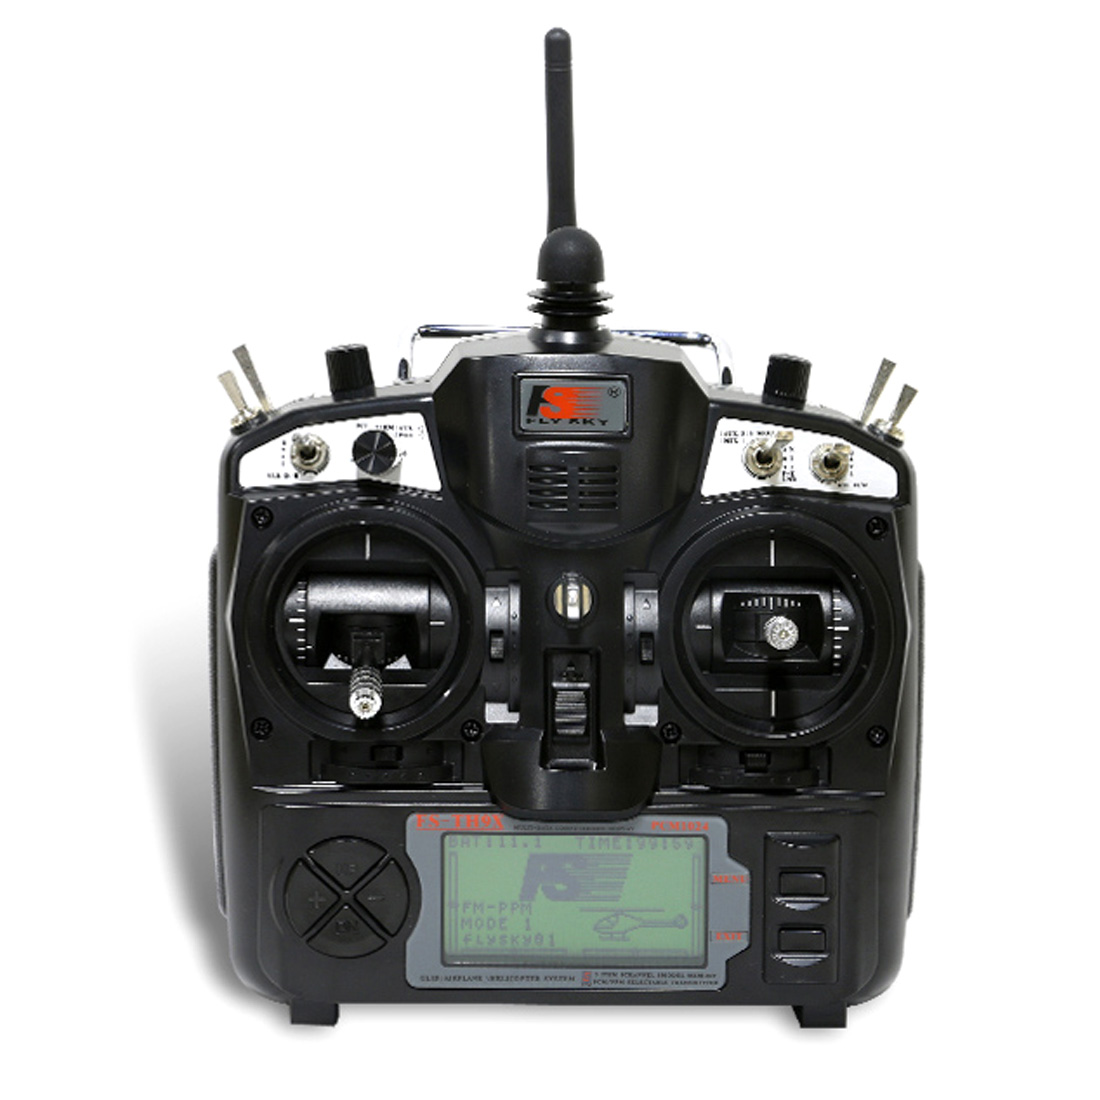 flysky gt2 tx rx combo - Upgraded FlySky FS-TH9X 2.4G 9CH Transmitter With FS-R9B RM002 Receiver Kit Mode 2 For Quadcopter Glider Helicopter Airplane Car